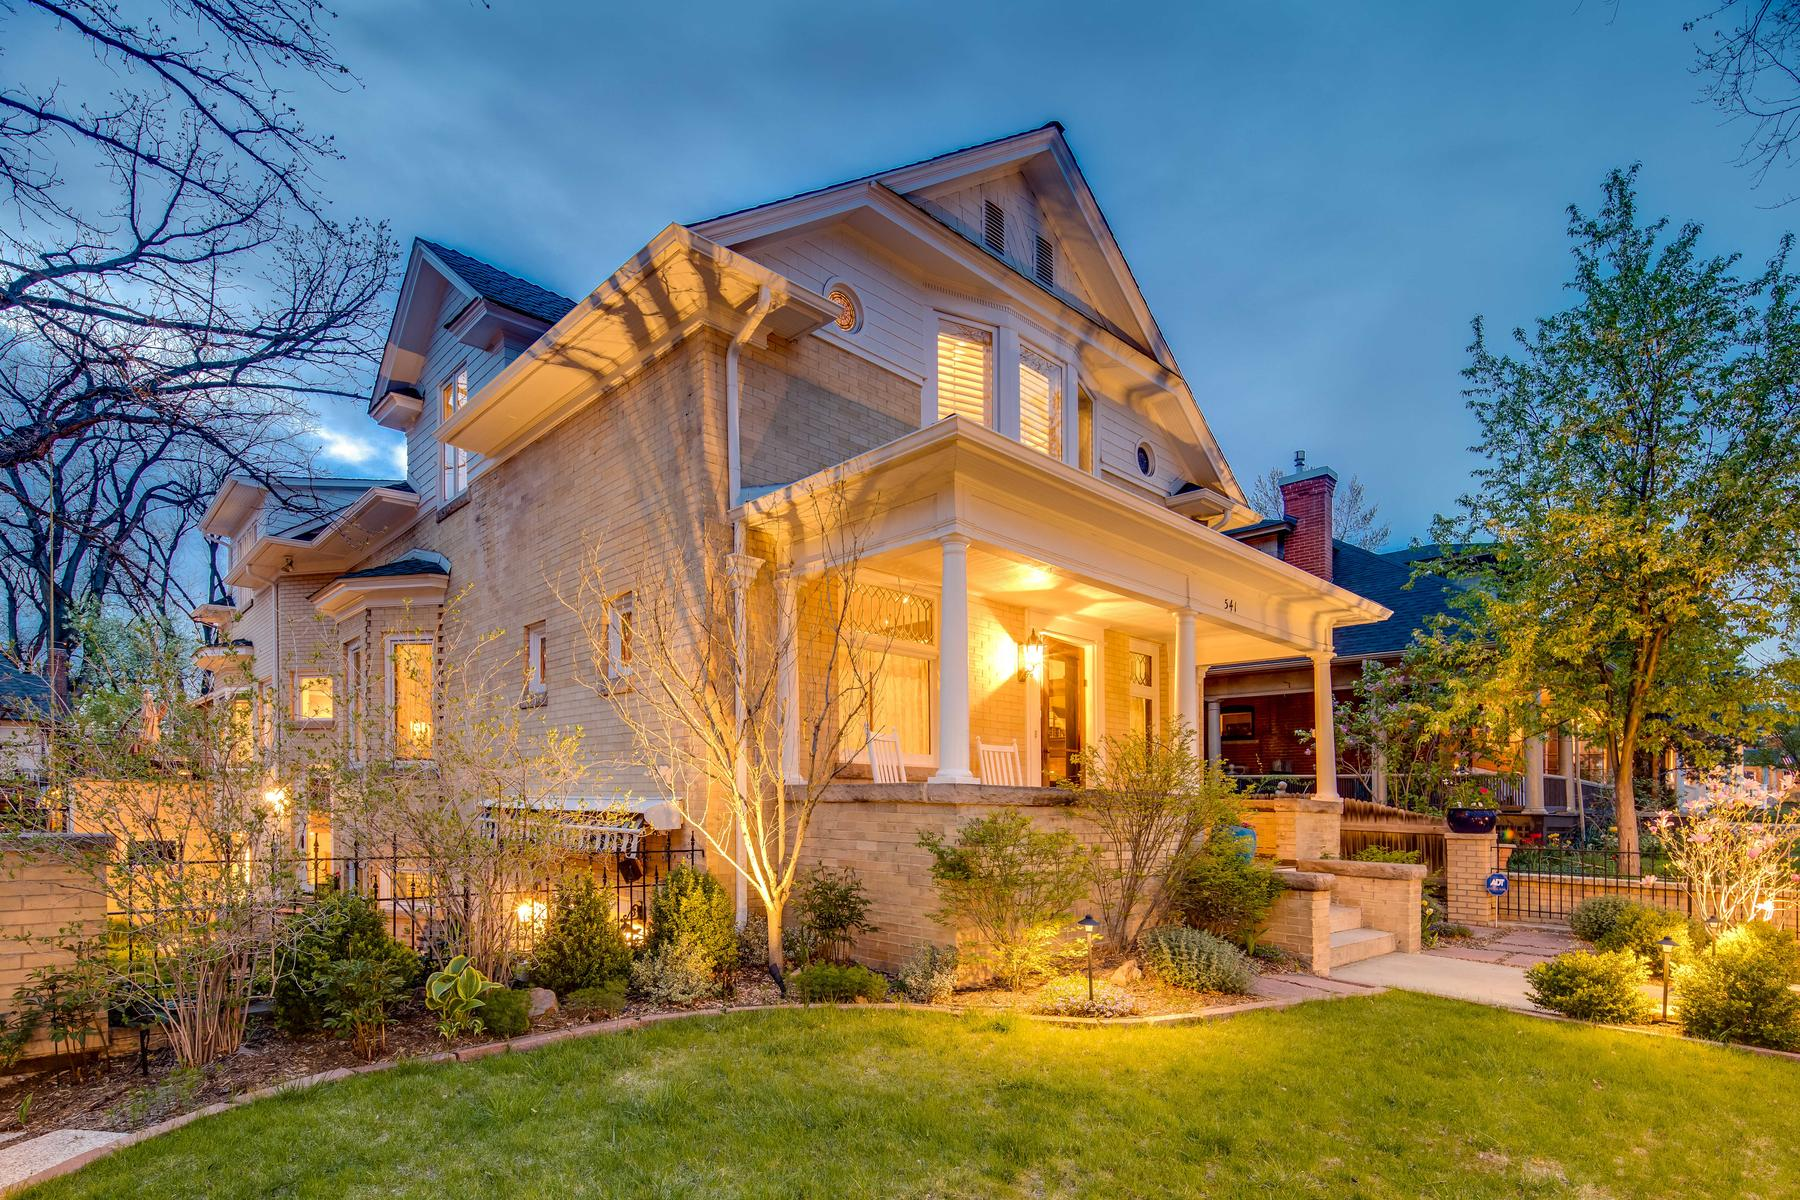 Additional photo for property listing at This Is The House You've Been Waiting For In Country Club! 541 High Street Denver, Colorado 80218 United States